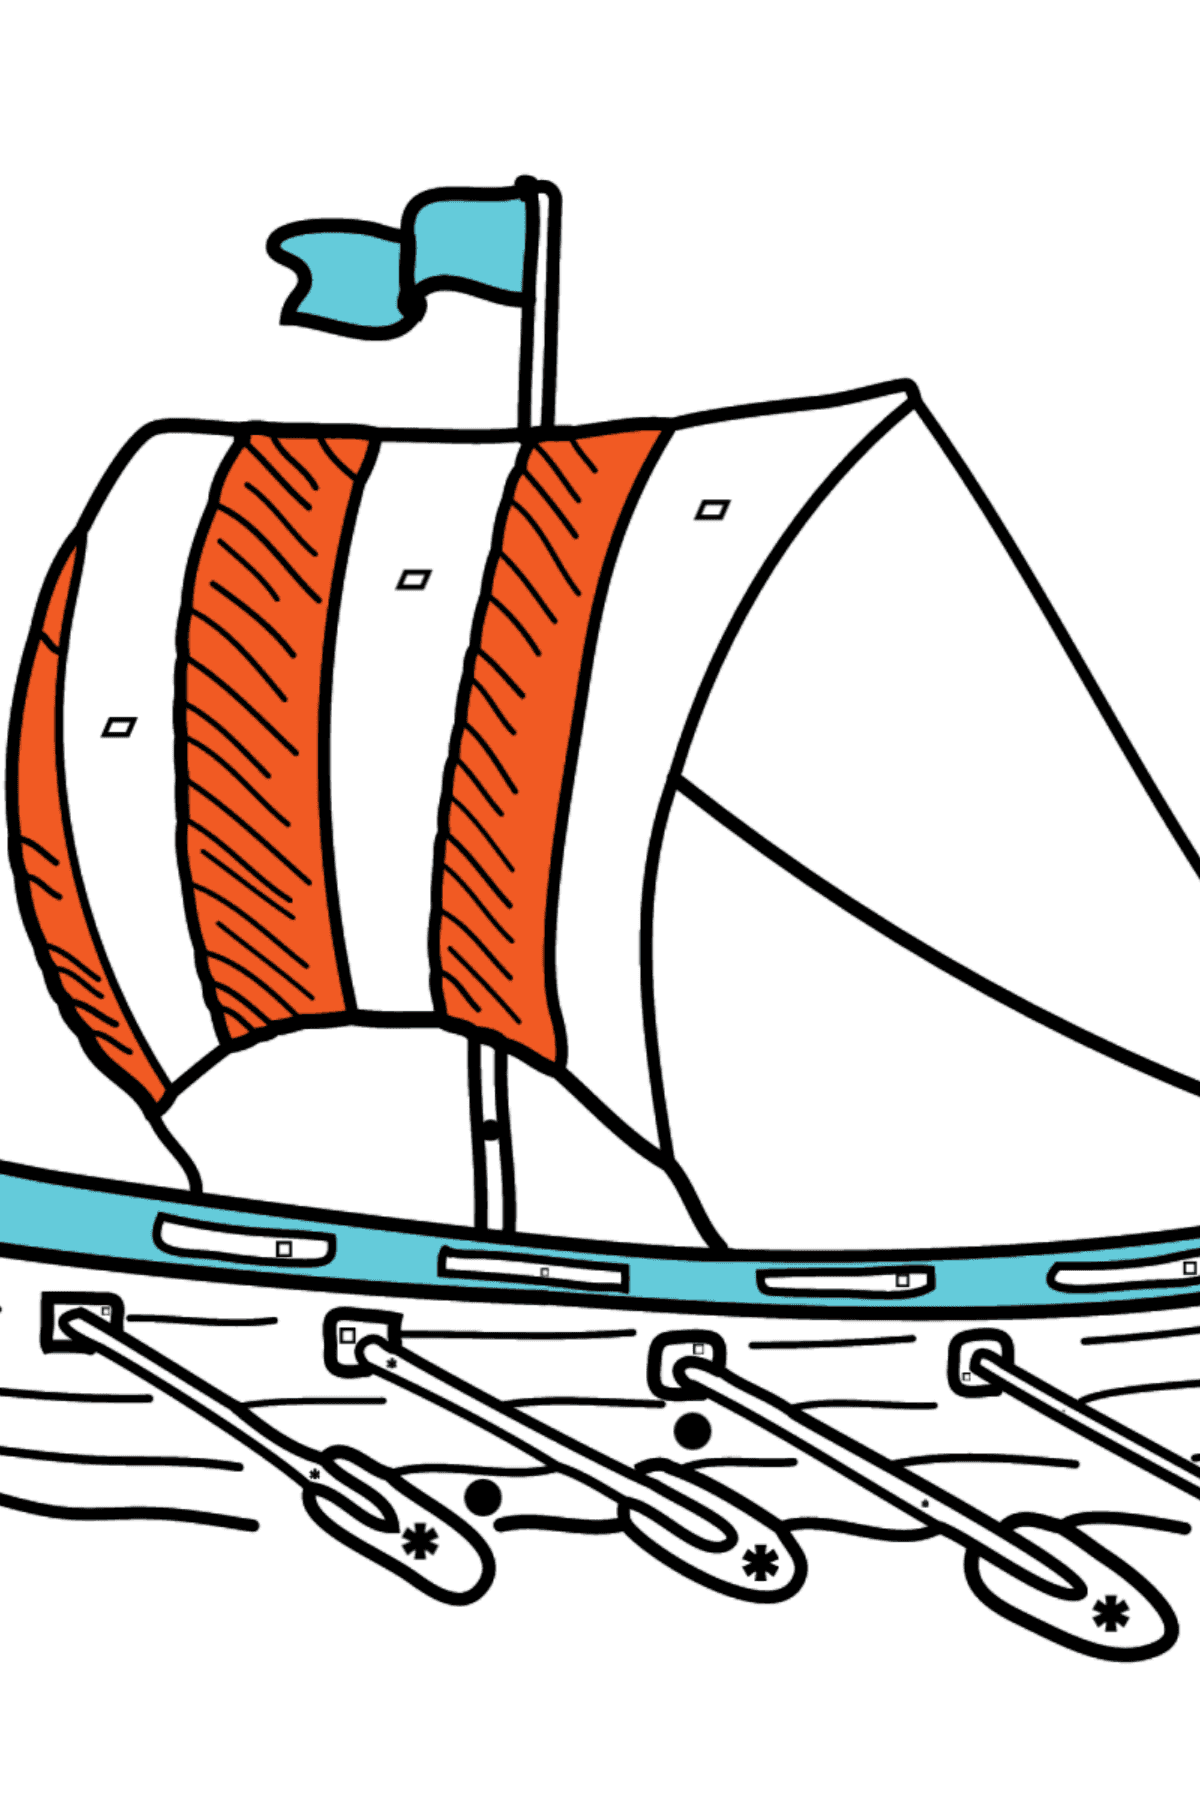 Coloring Page - A River Rowing Boat - Coloring by Symbols and Geometric Shapes for Kids